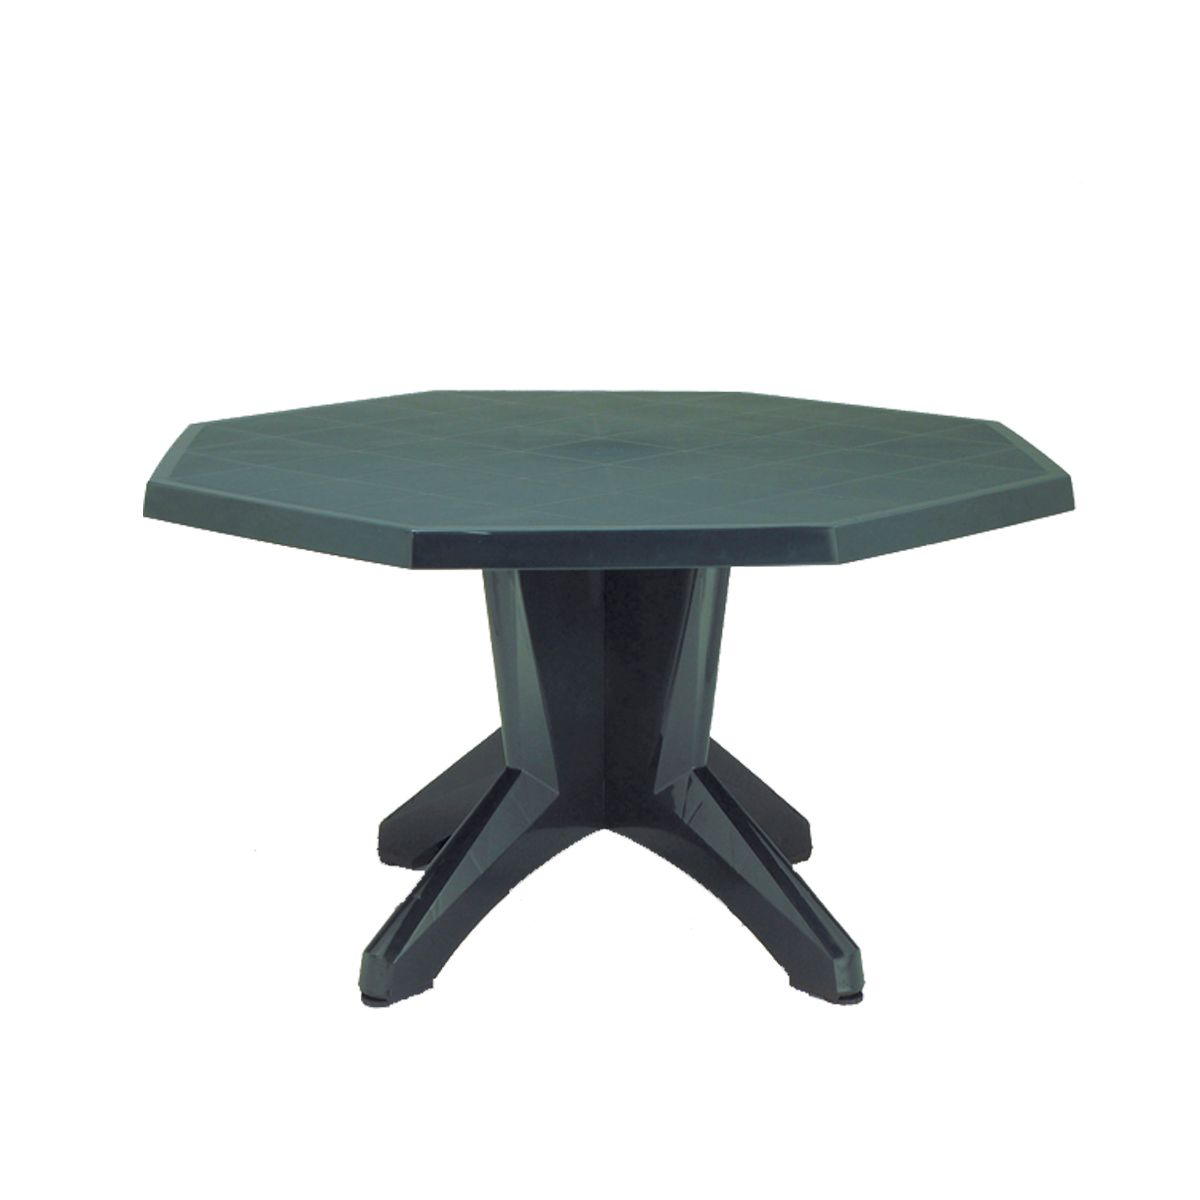 Table octogonale NARDI Olimpo